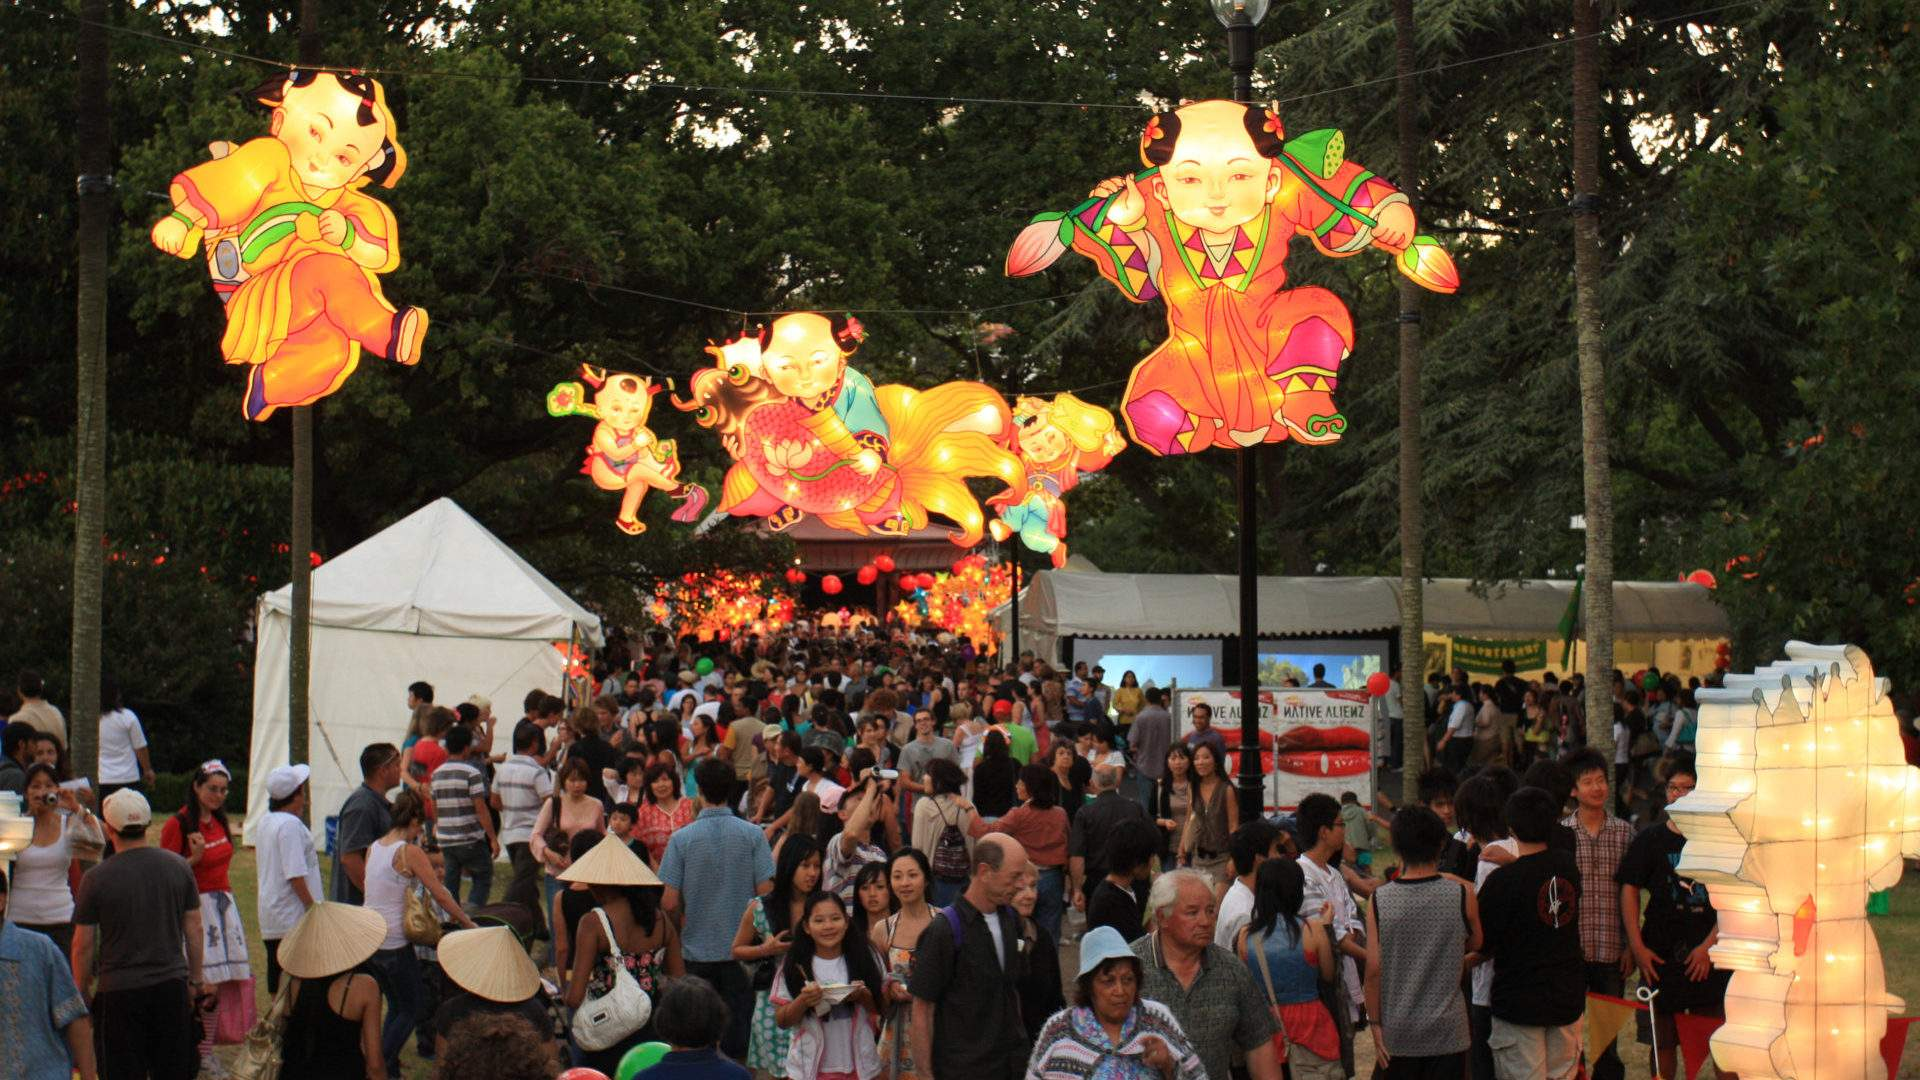 Auckland's Much-Loved Lantern Festival Is Back for 2021 in a New Waterfront Location